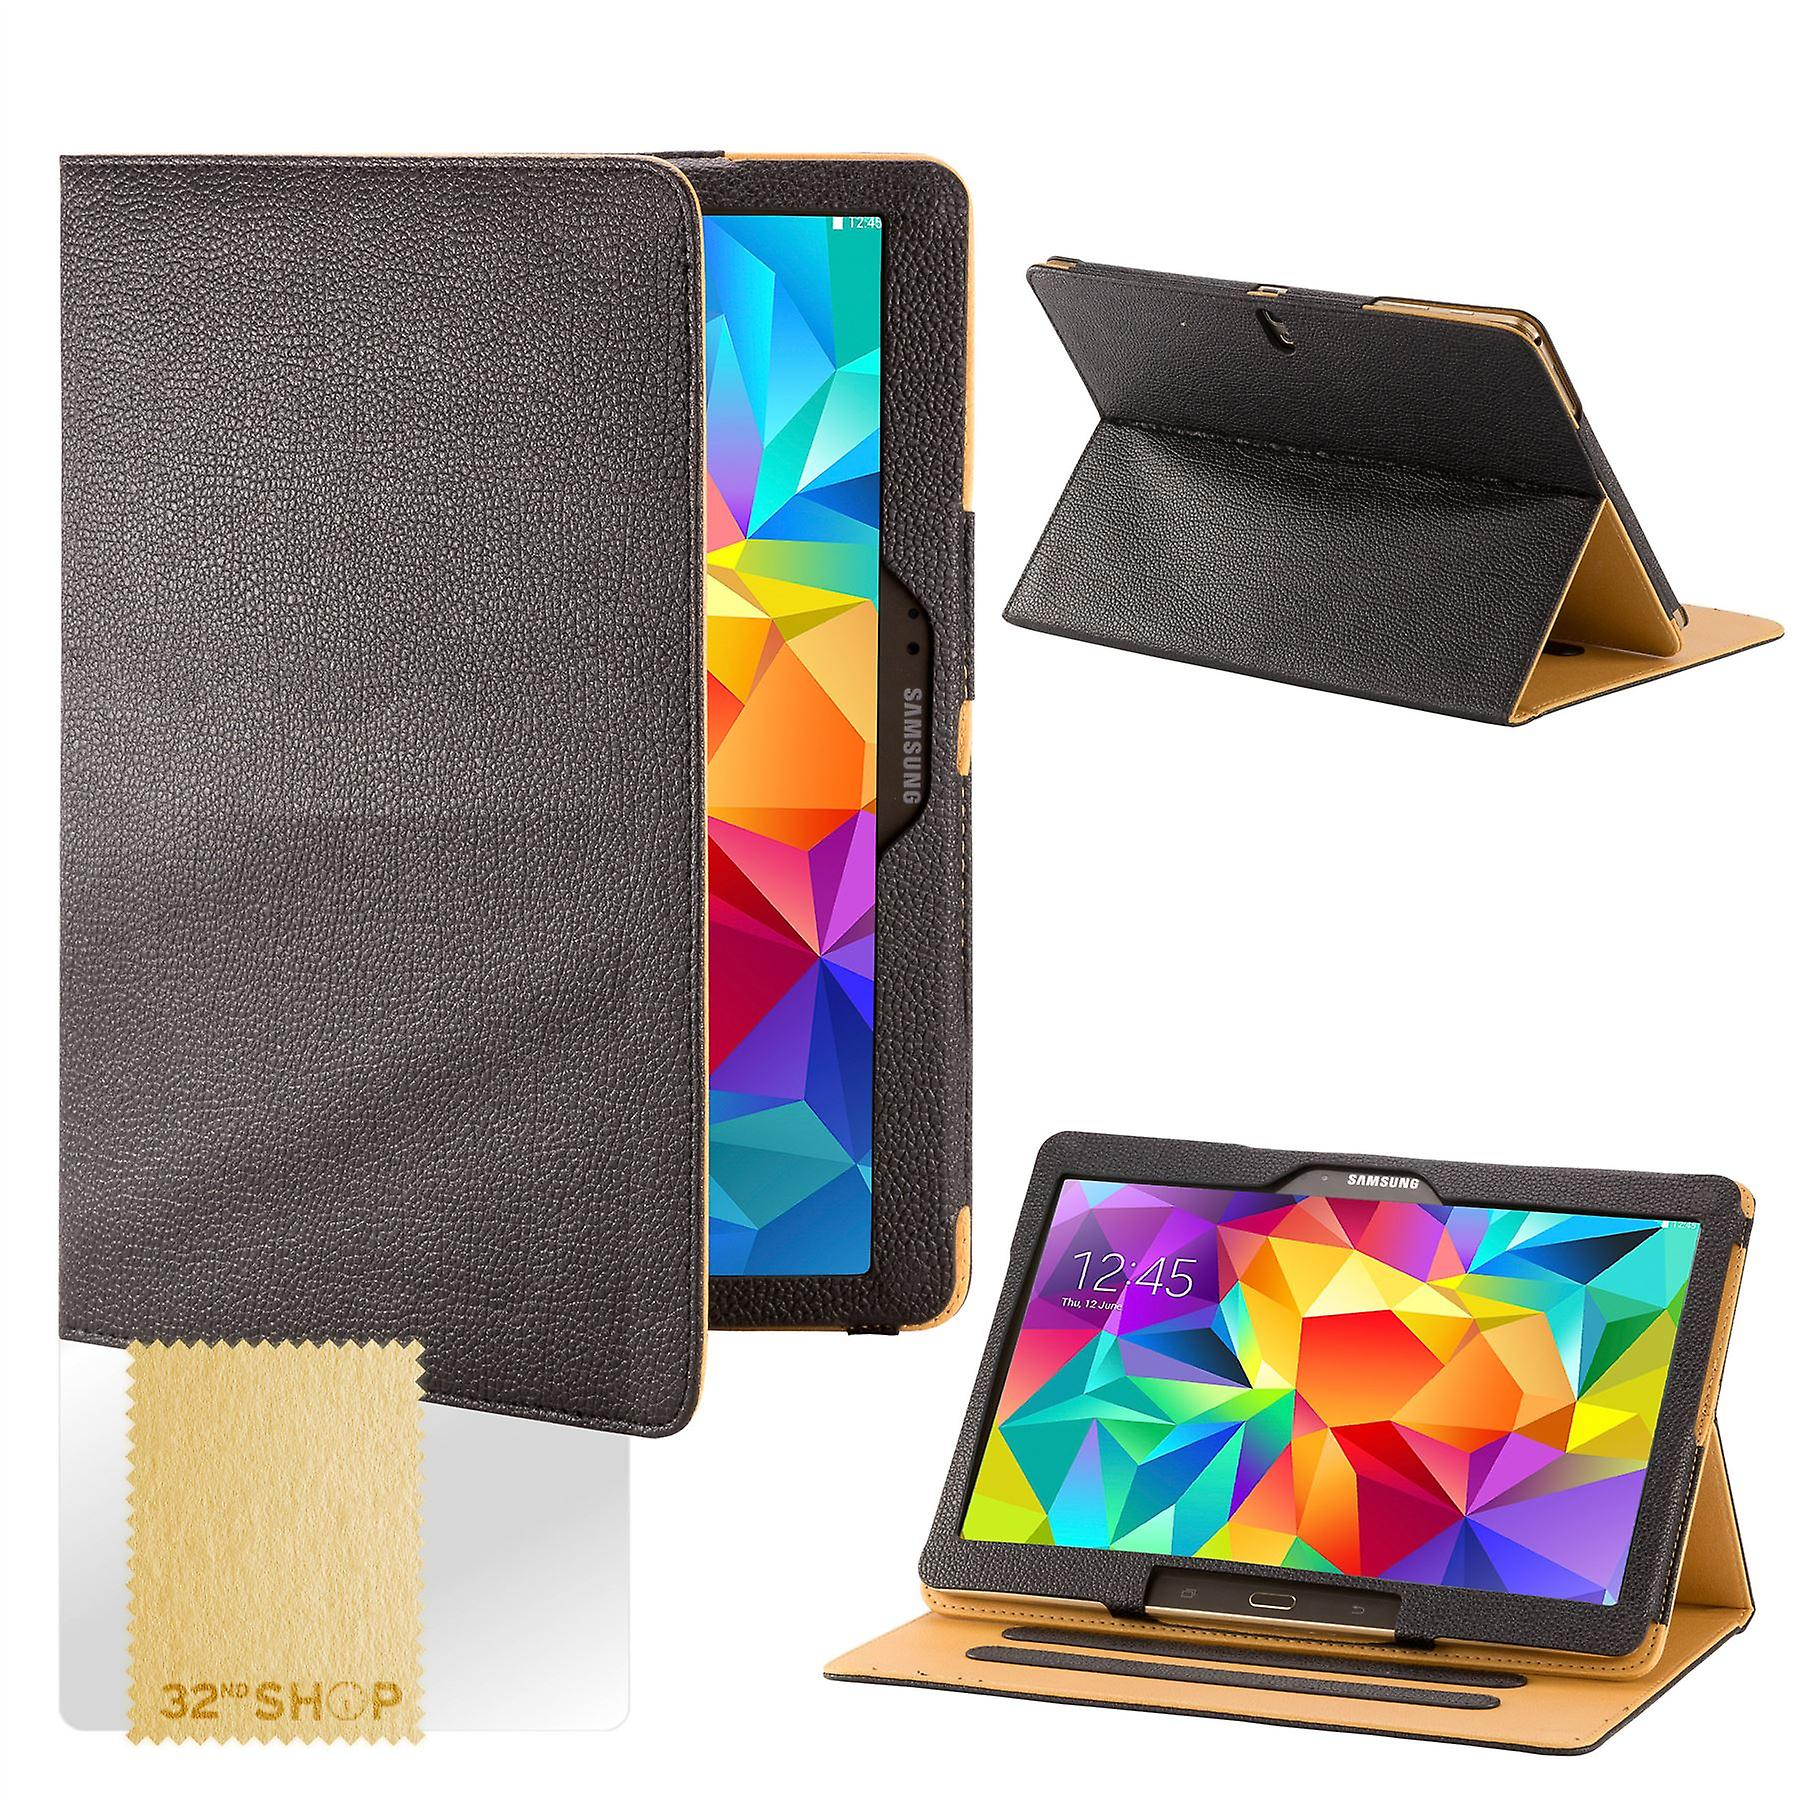 Book Leather case cover for Samsung Galaxy Tab 2, 7